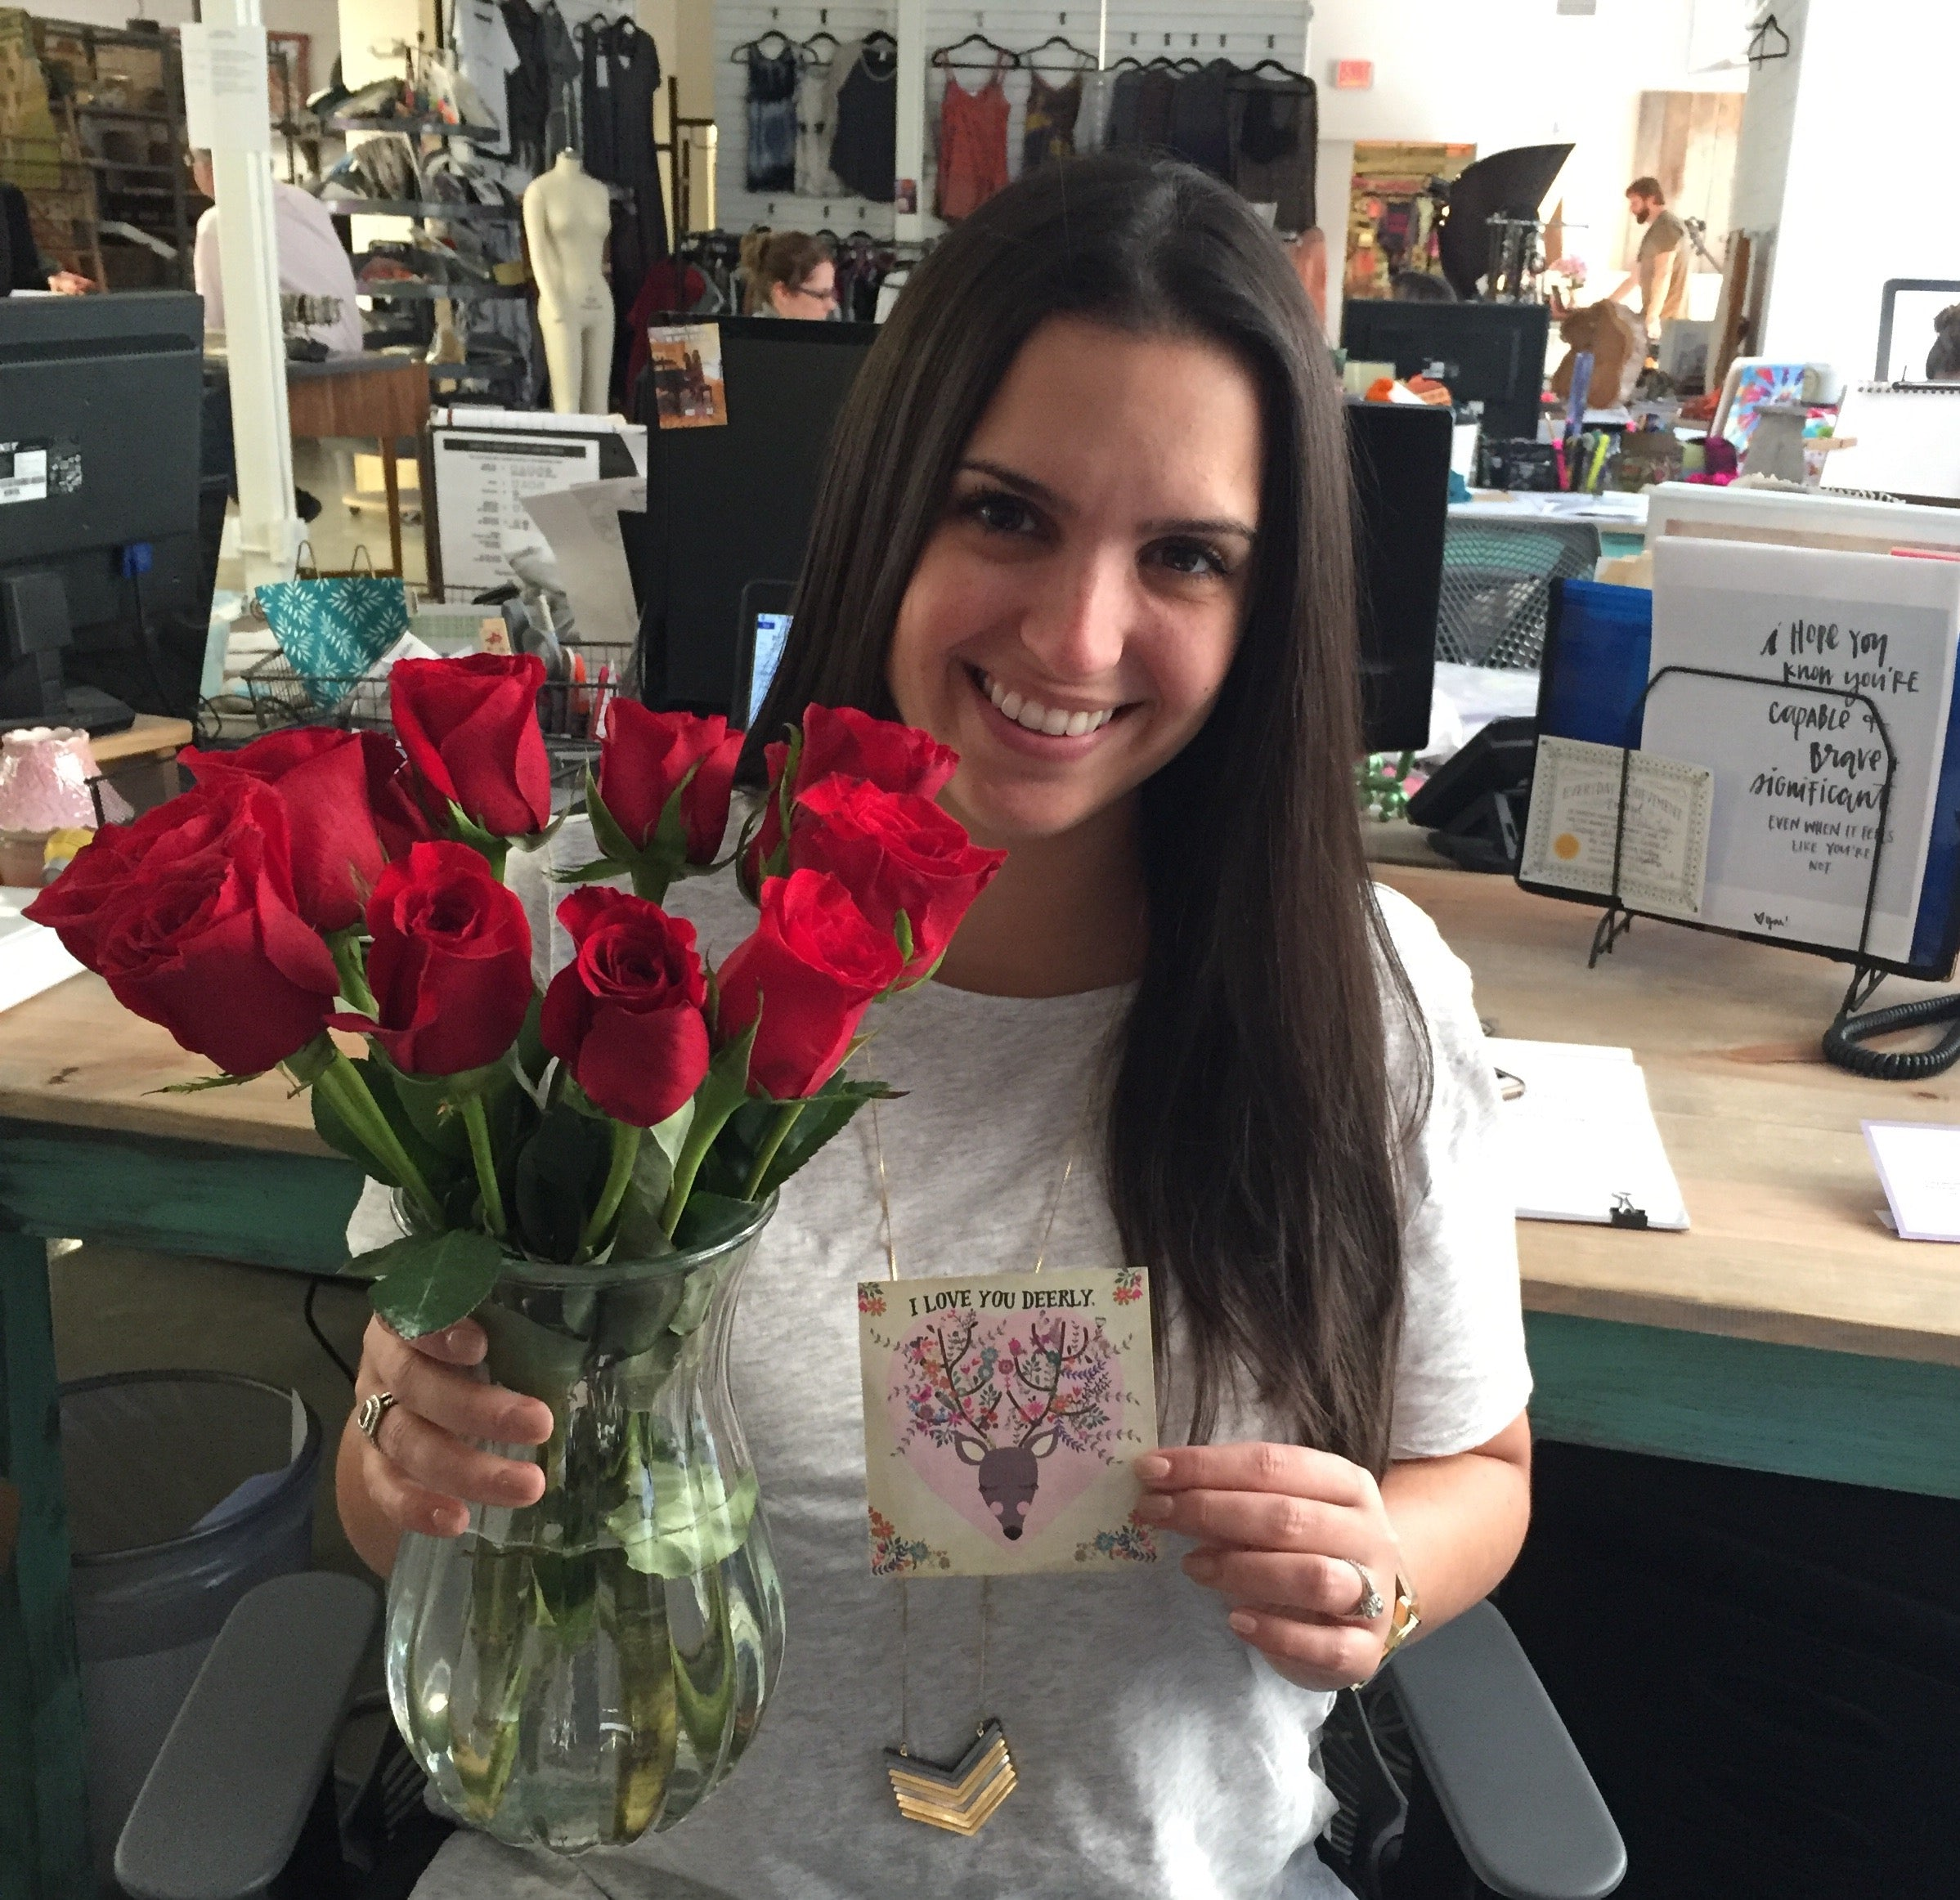 Natalie with flowers from her husband